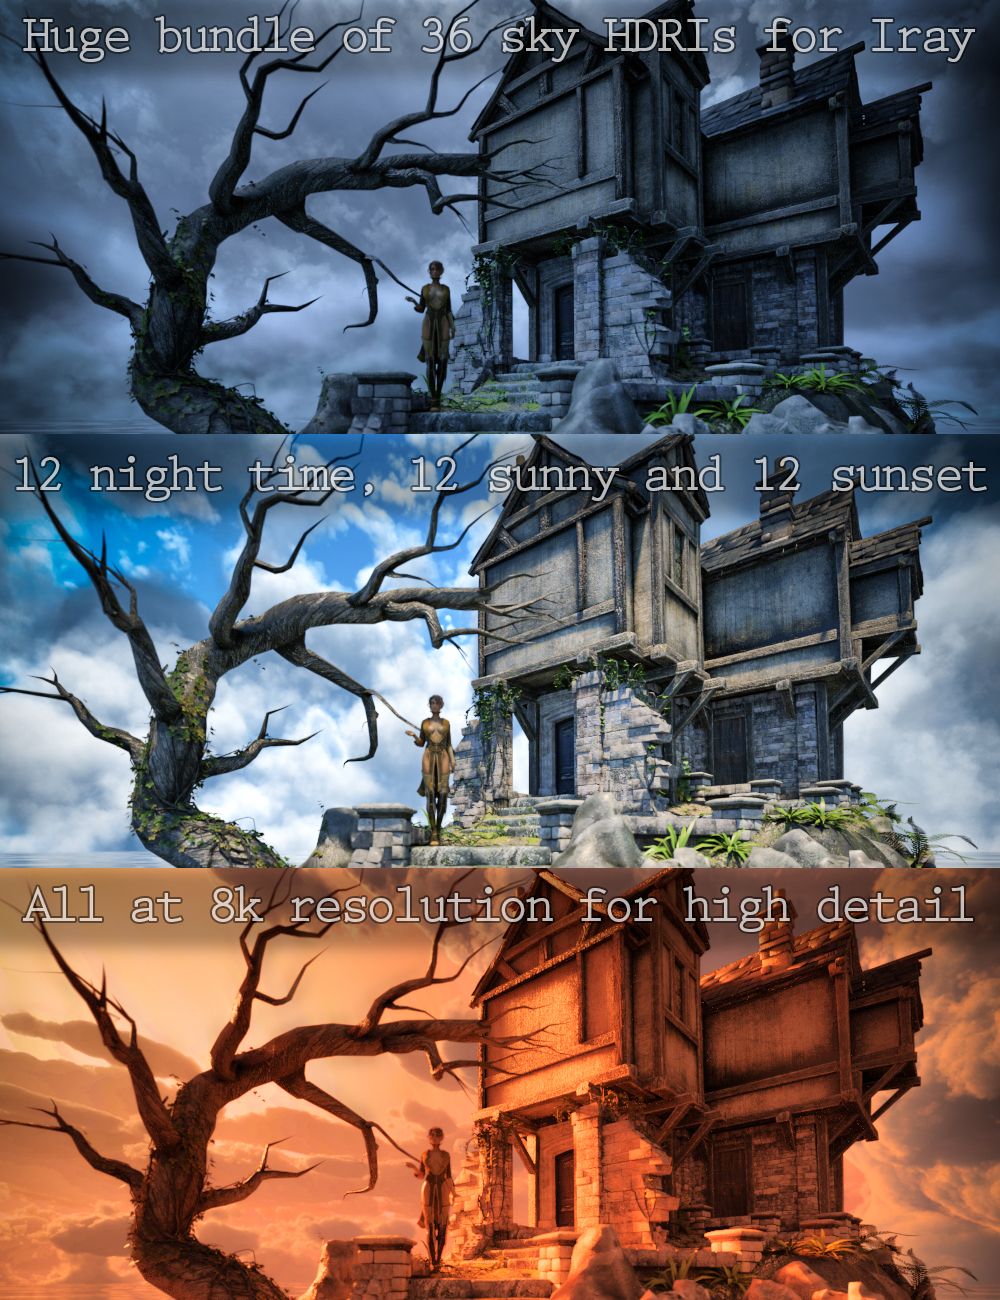 Skies of iRadiance - High Sky HDRI Bundle for Iray by: DimensionTheory, 3D Models by Daz 3D